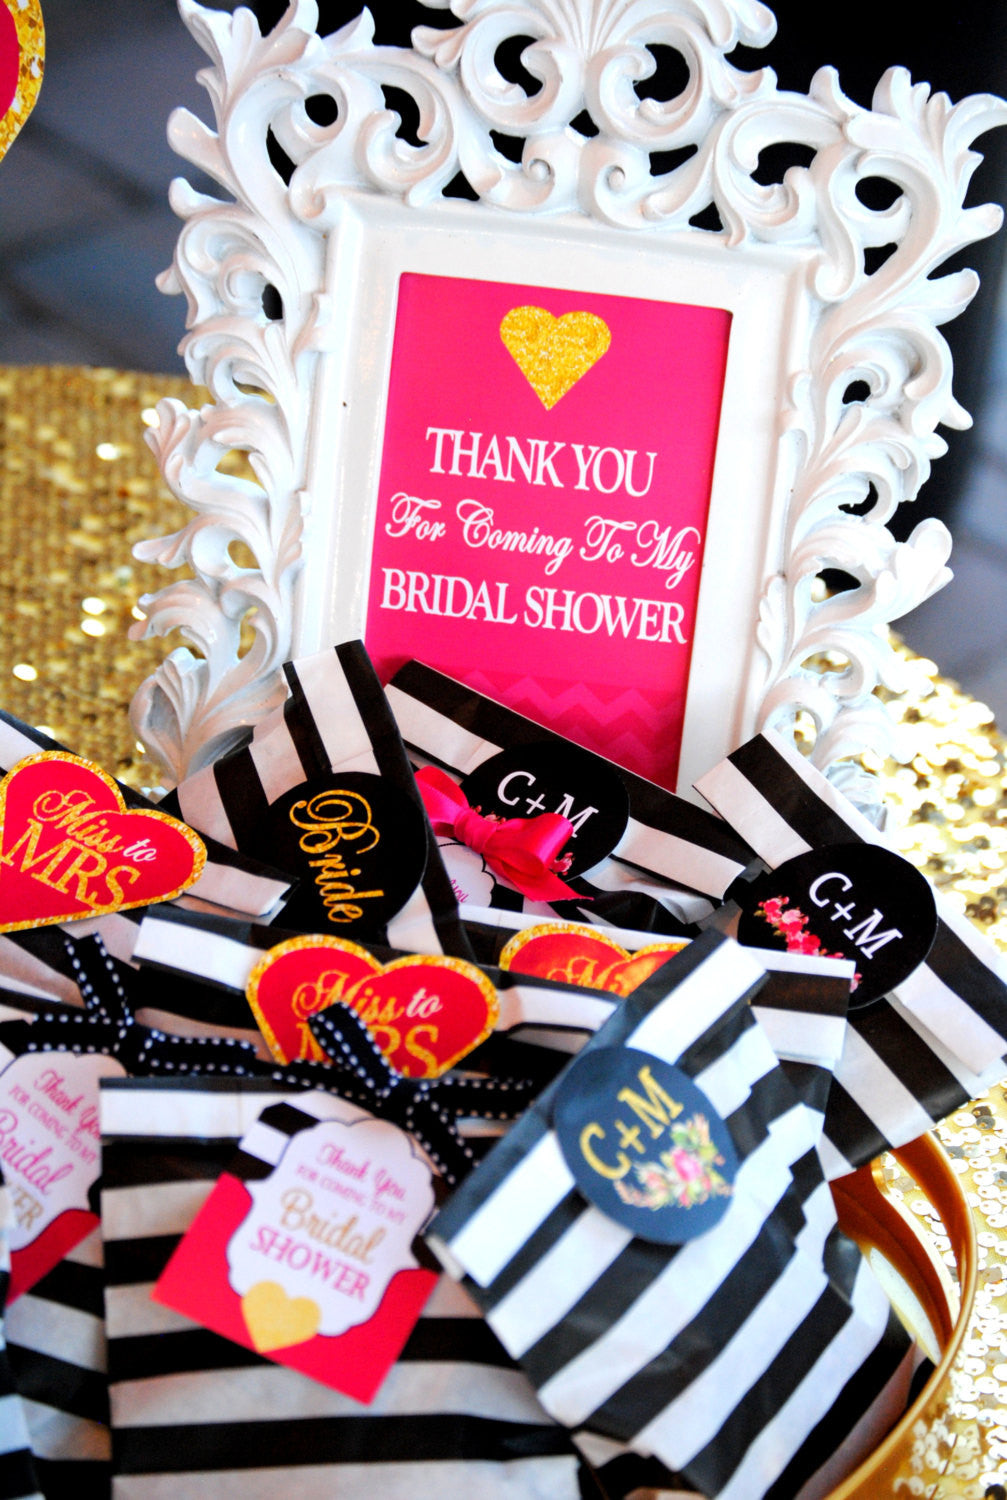 BRIDAL SHOWER - Bridal SIGN - Shower THANK YOU SIGN - Pink Wedding